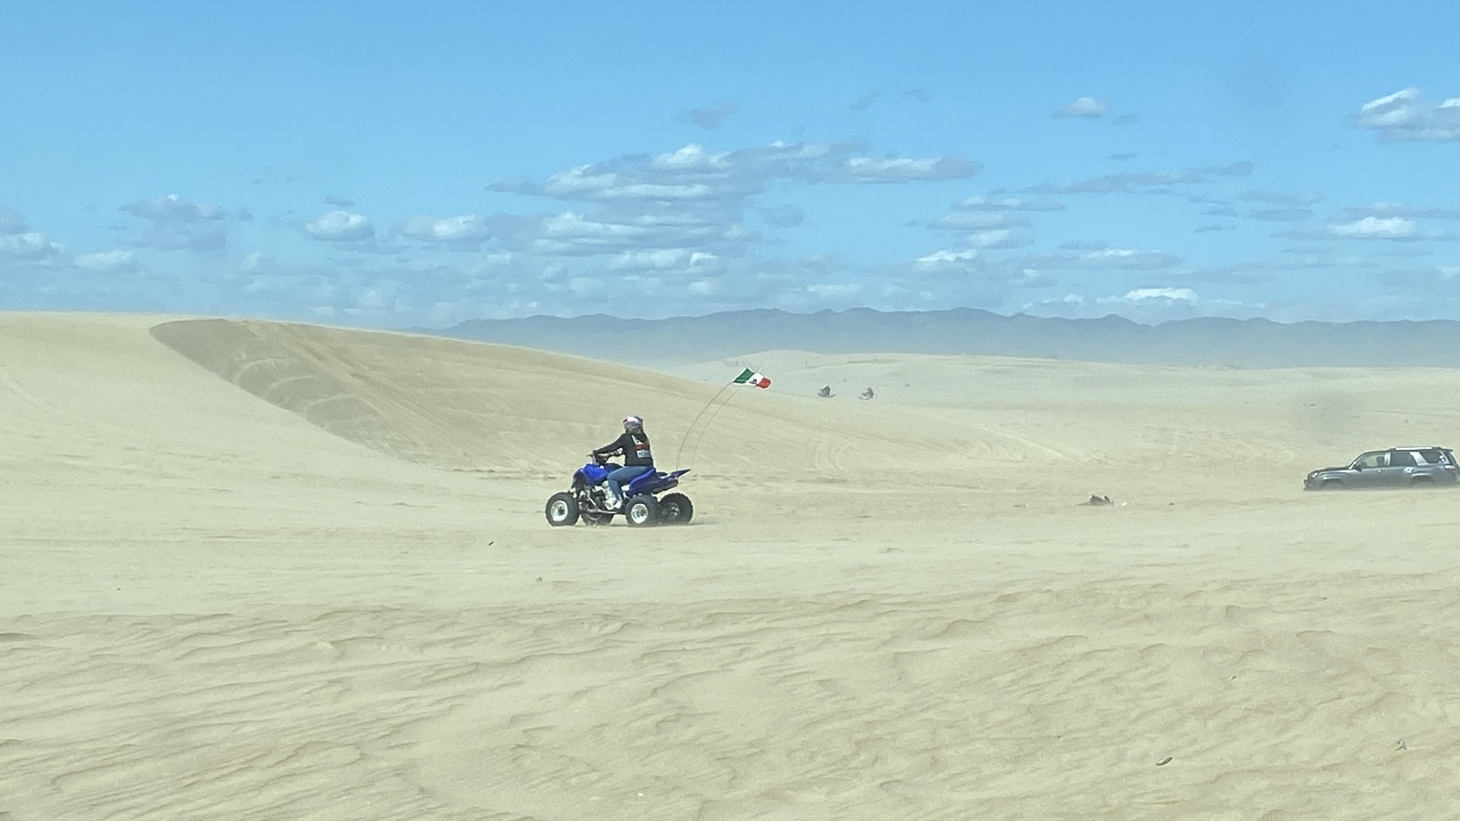 Small quads, and dirt bikes, and luxury SUVs make their way through Oceano Dunes. The recreation area has dust mitigation tools, and sizable parts are fenced off to protect threatened species like the snowy plover. Off-roaders are adamant that they can responsibly pursue their pastime without causing significant harm to the unique natural setting.